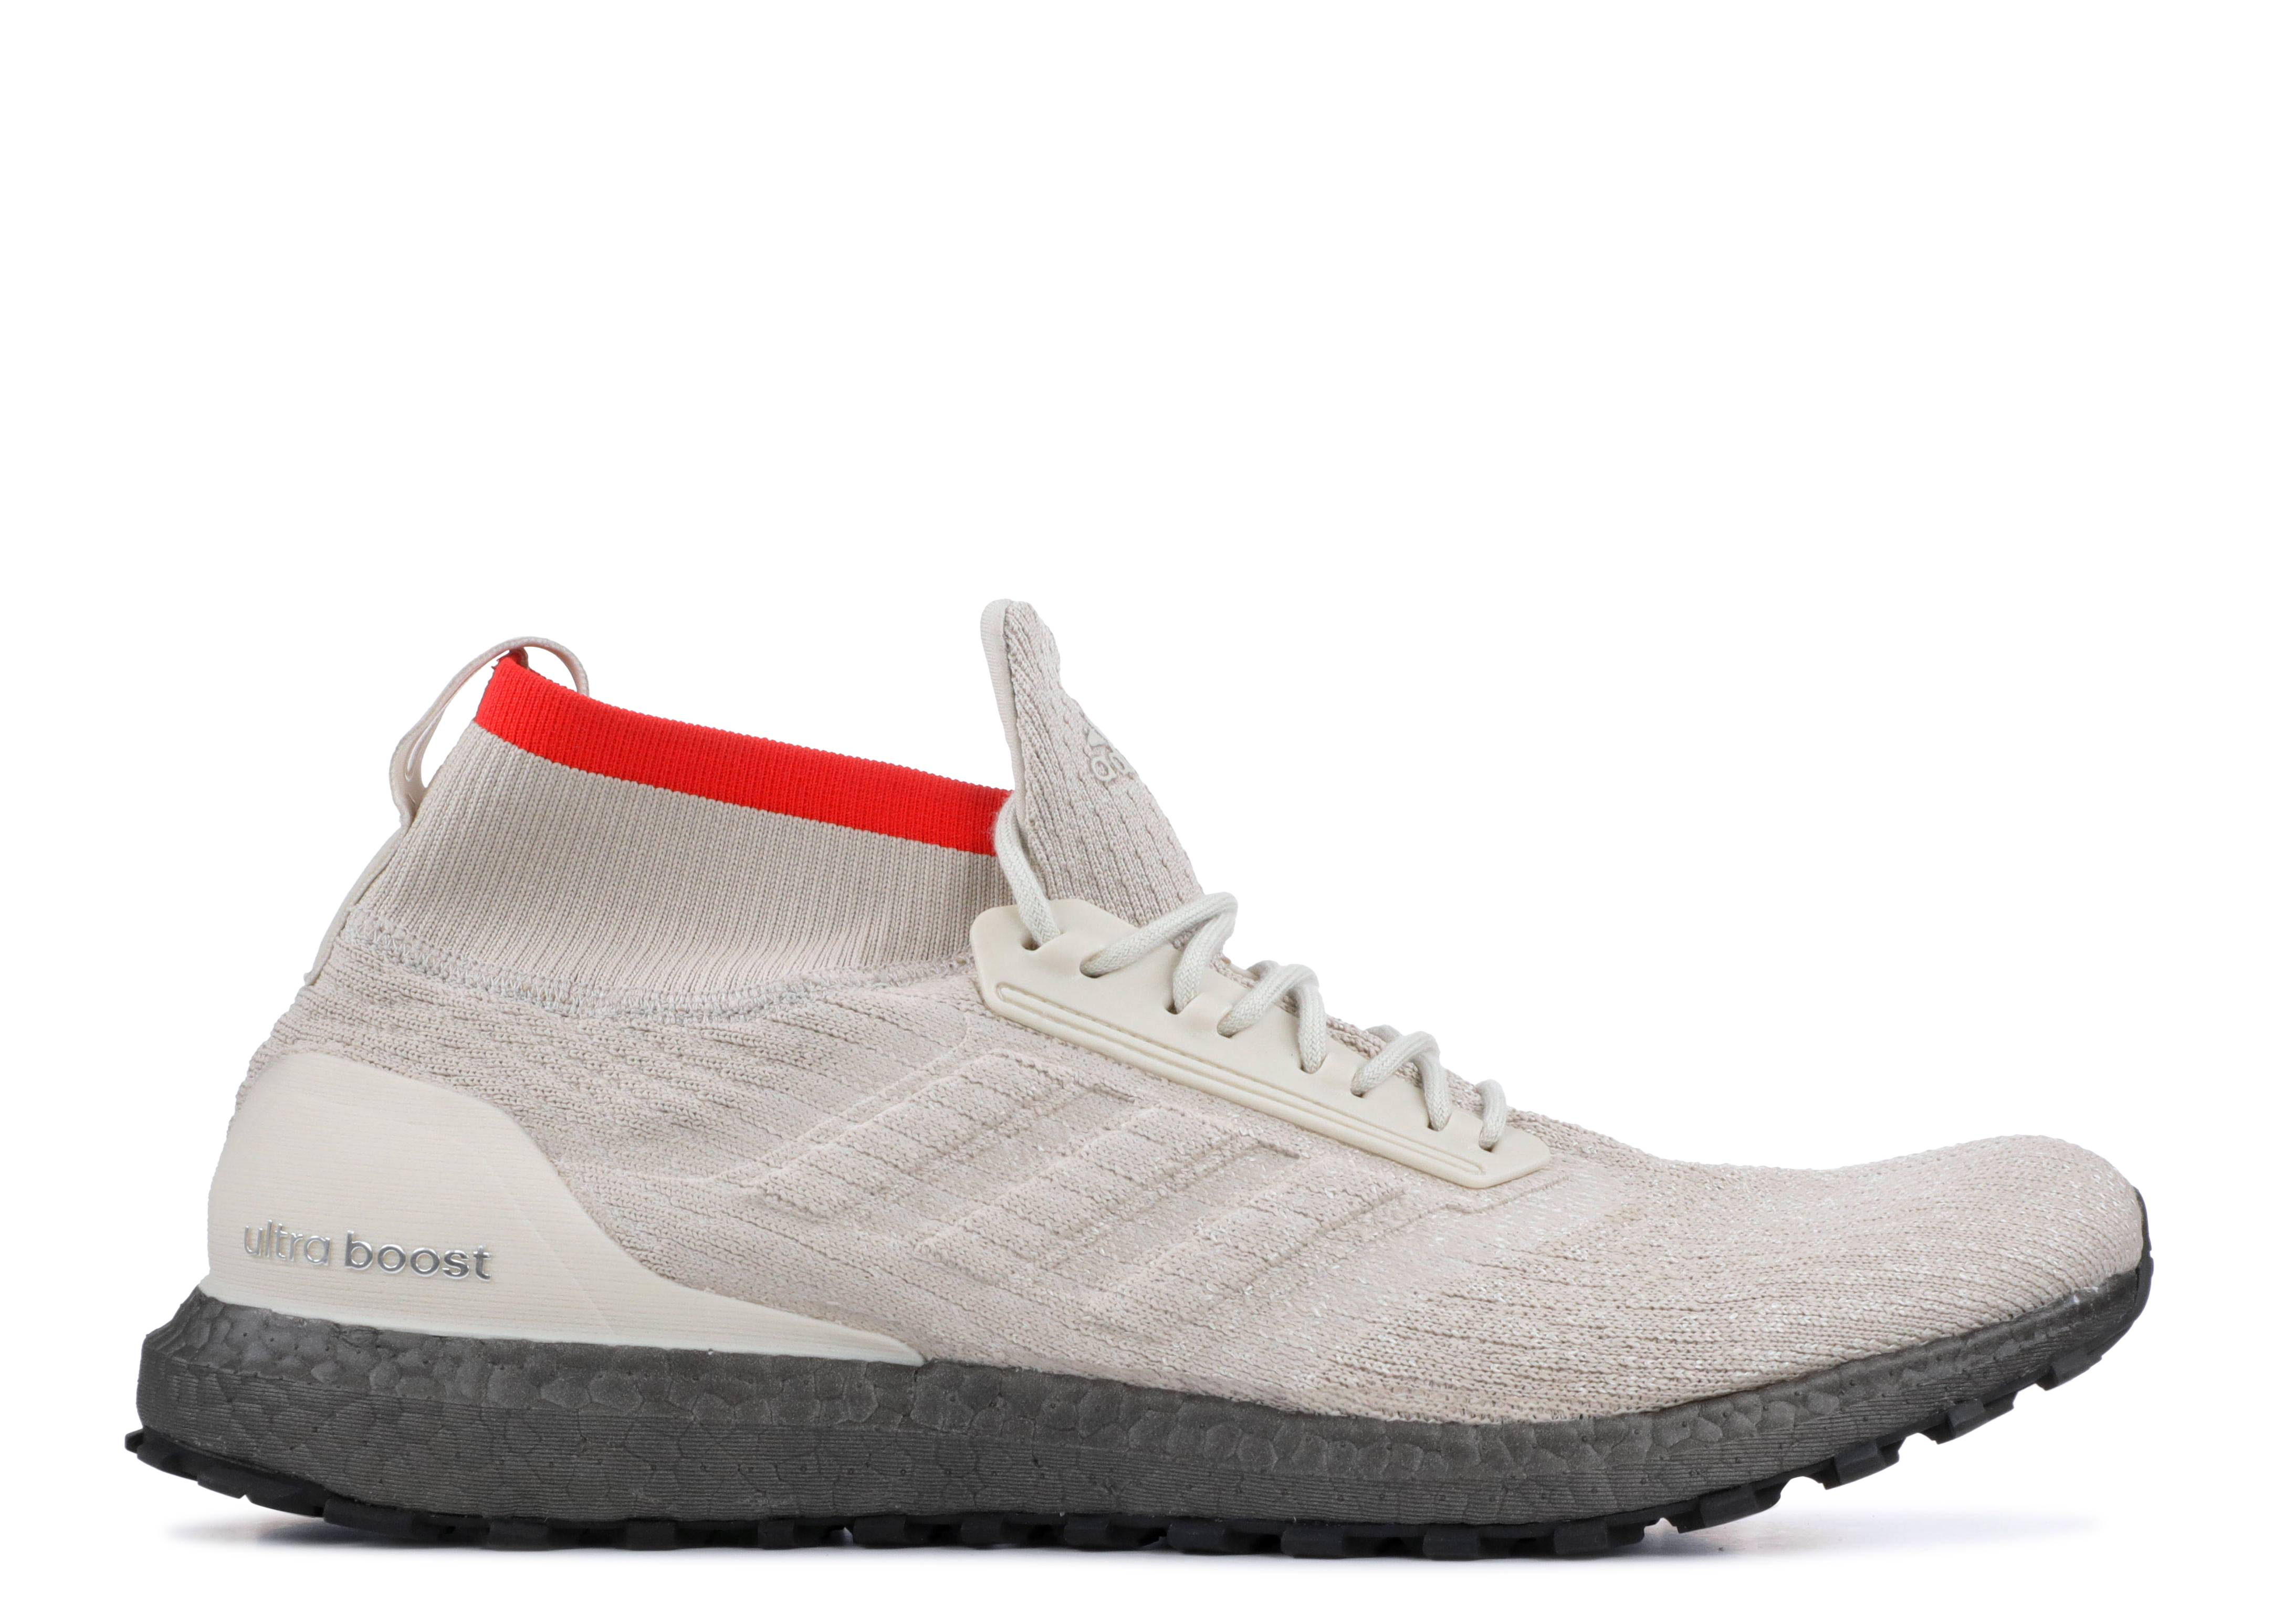 ultraboost at